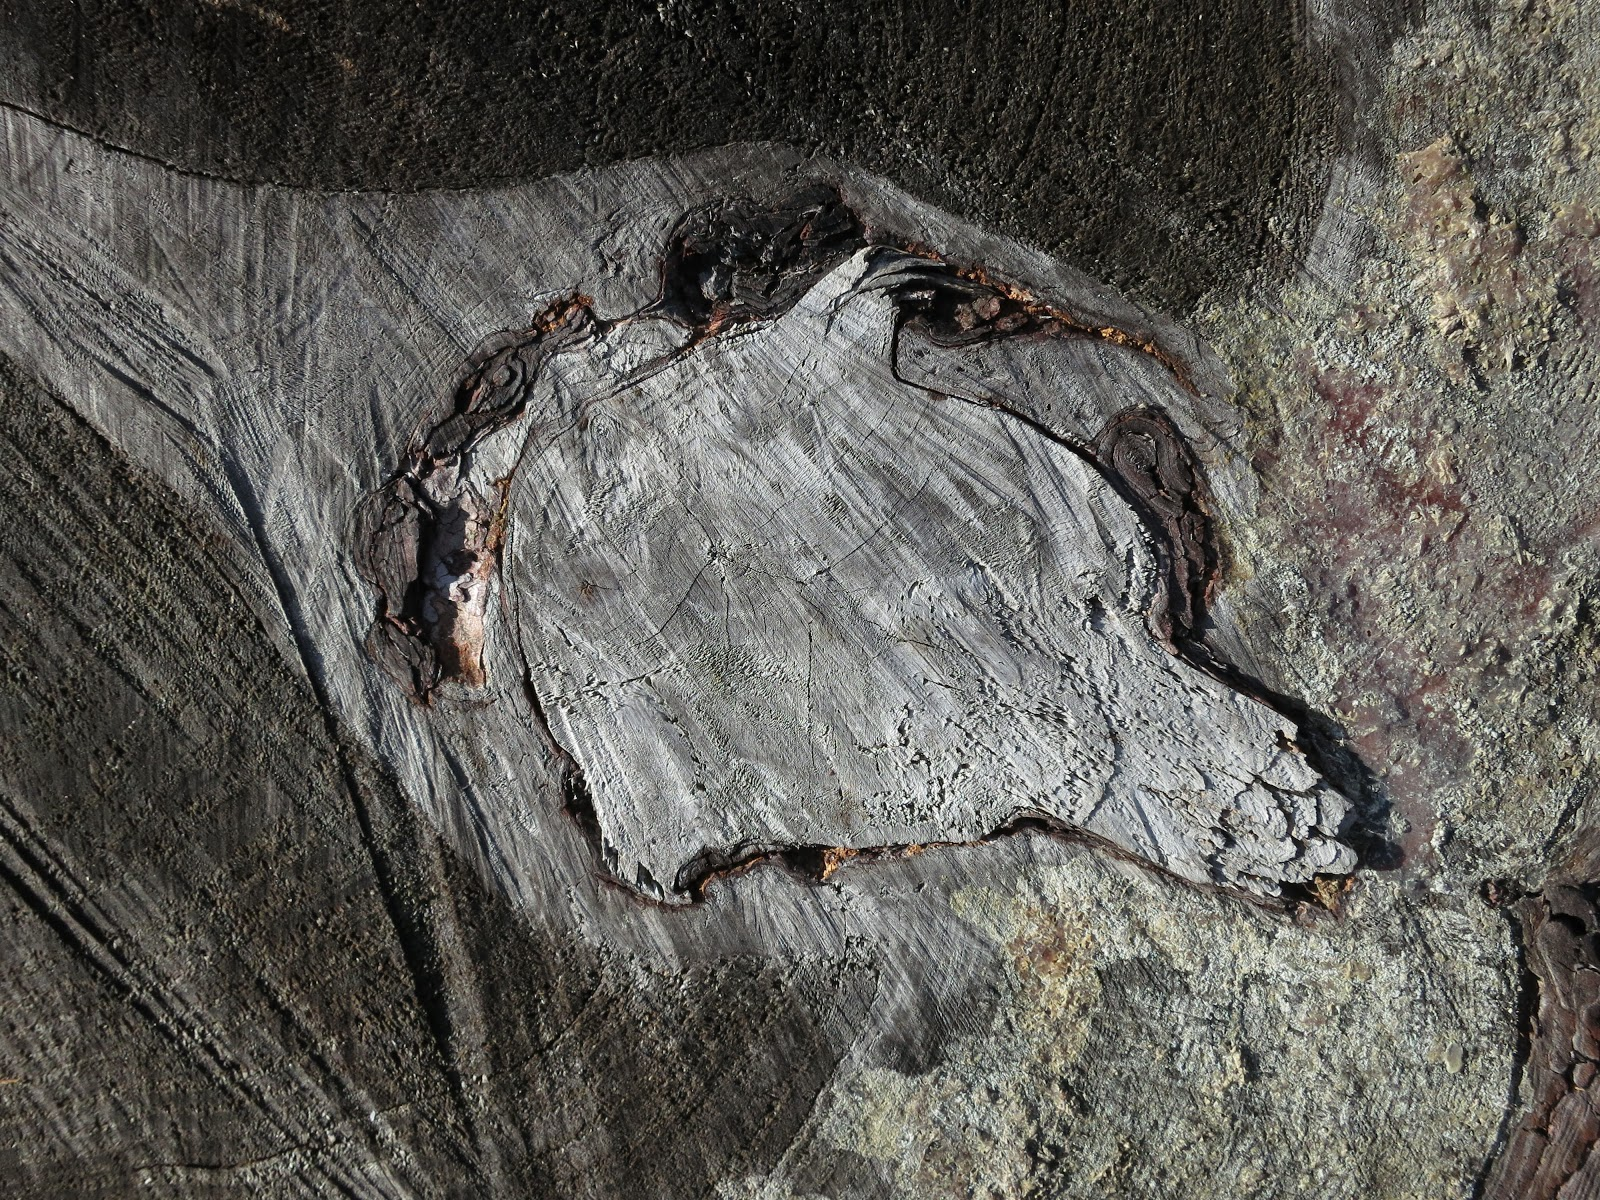 The upper surface of a tree stump showing knot, rings and saw scars